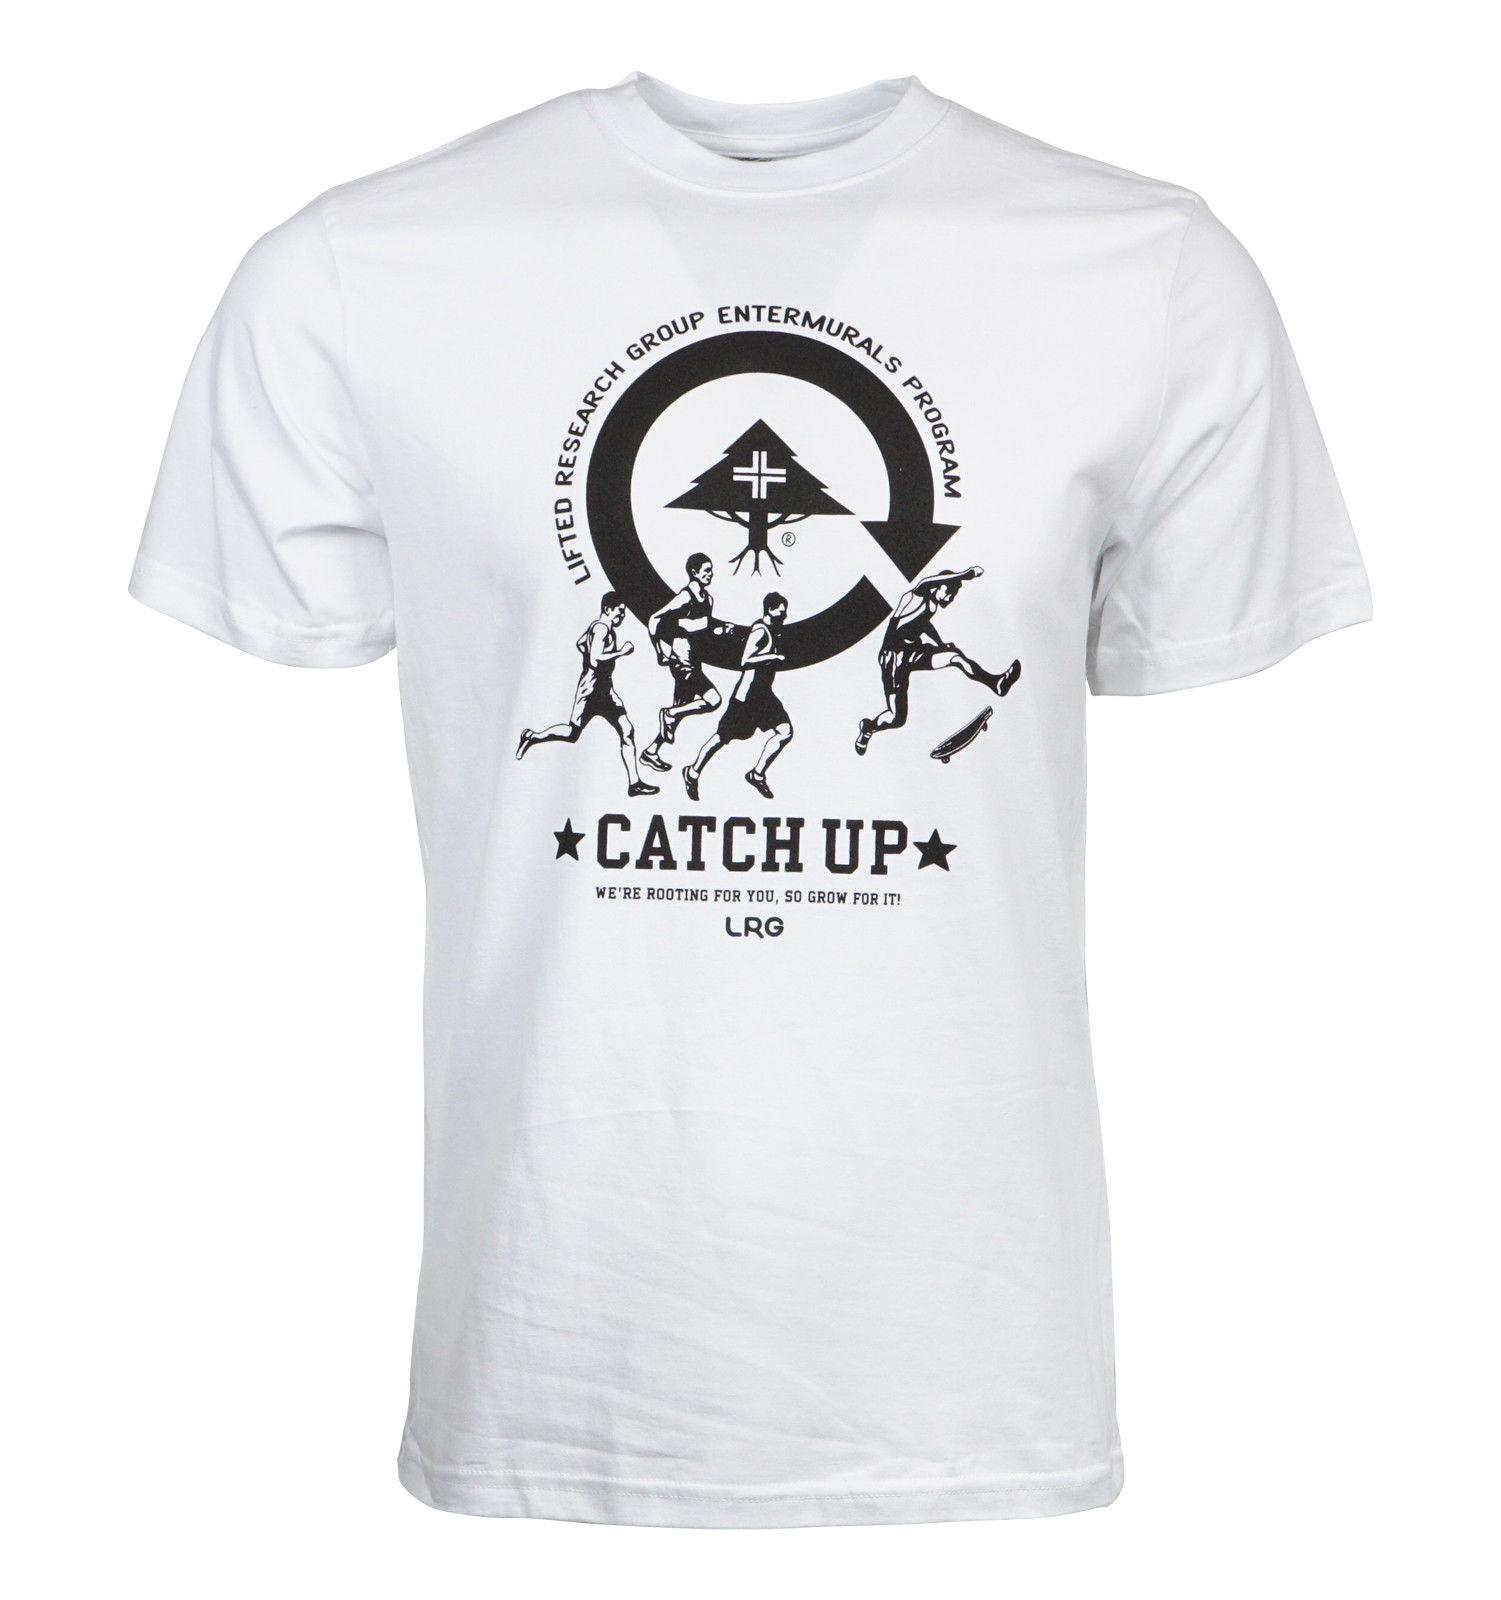 2e6ab83cd6eaf LRG LIFTED RESEARCH GROUP MENS CATCH UP T SHIRT Vintage T Shirts Band T  Shirts From Customizedshirts46